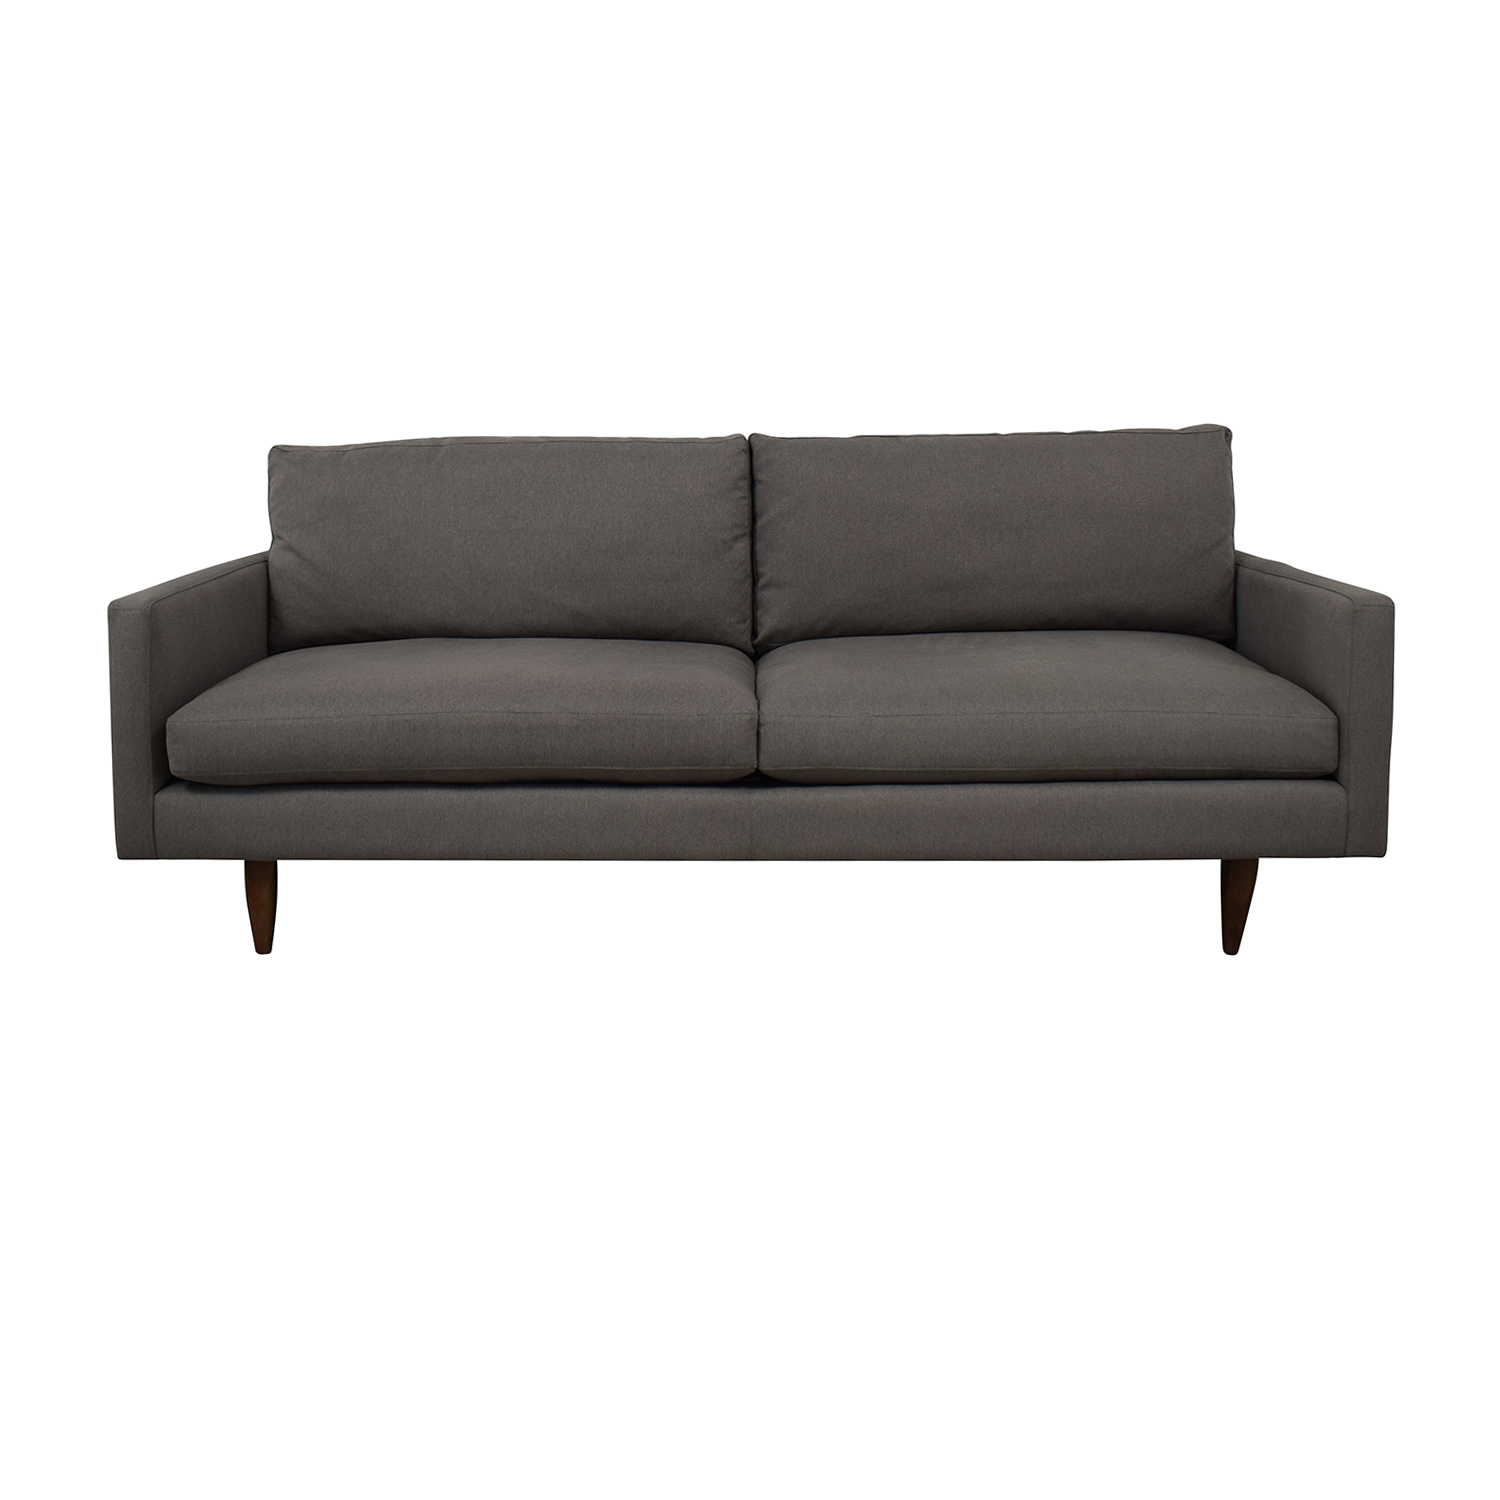 buy Room & Board Jasper Sofa Room & Board Classic Sofas